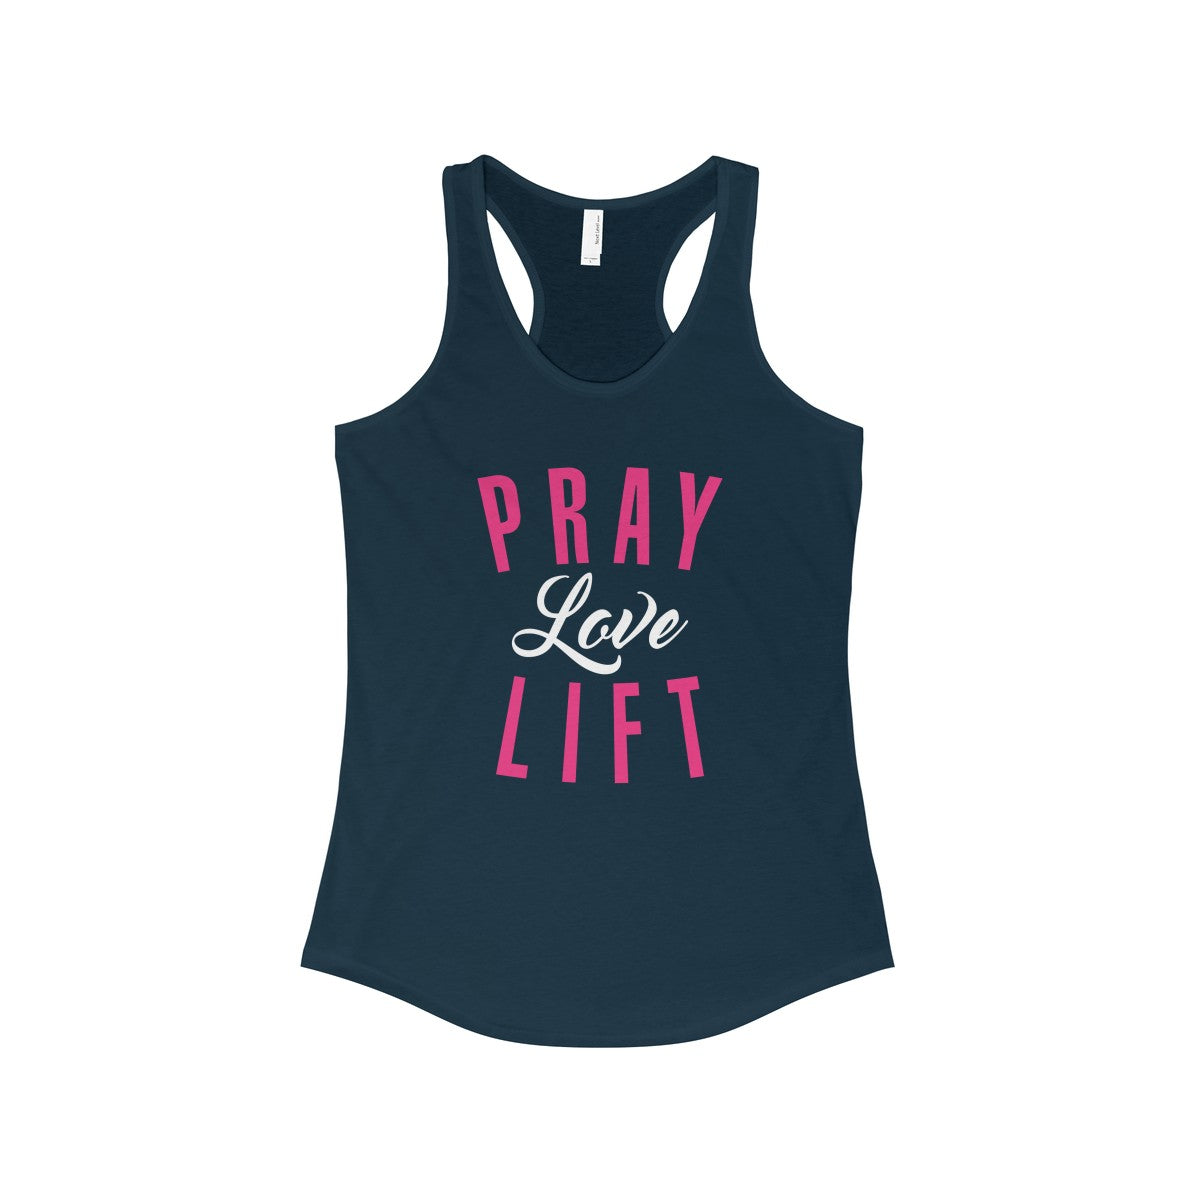 Pray Love Lift Tank